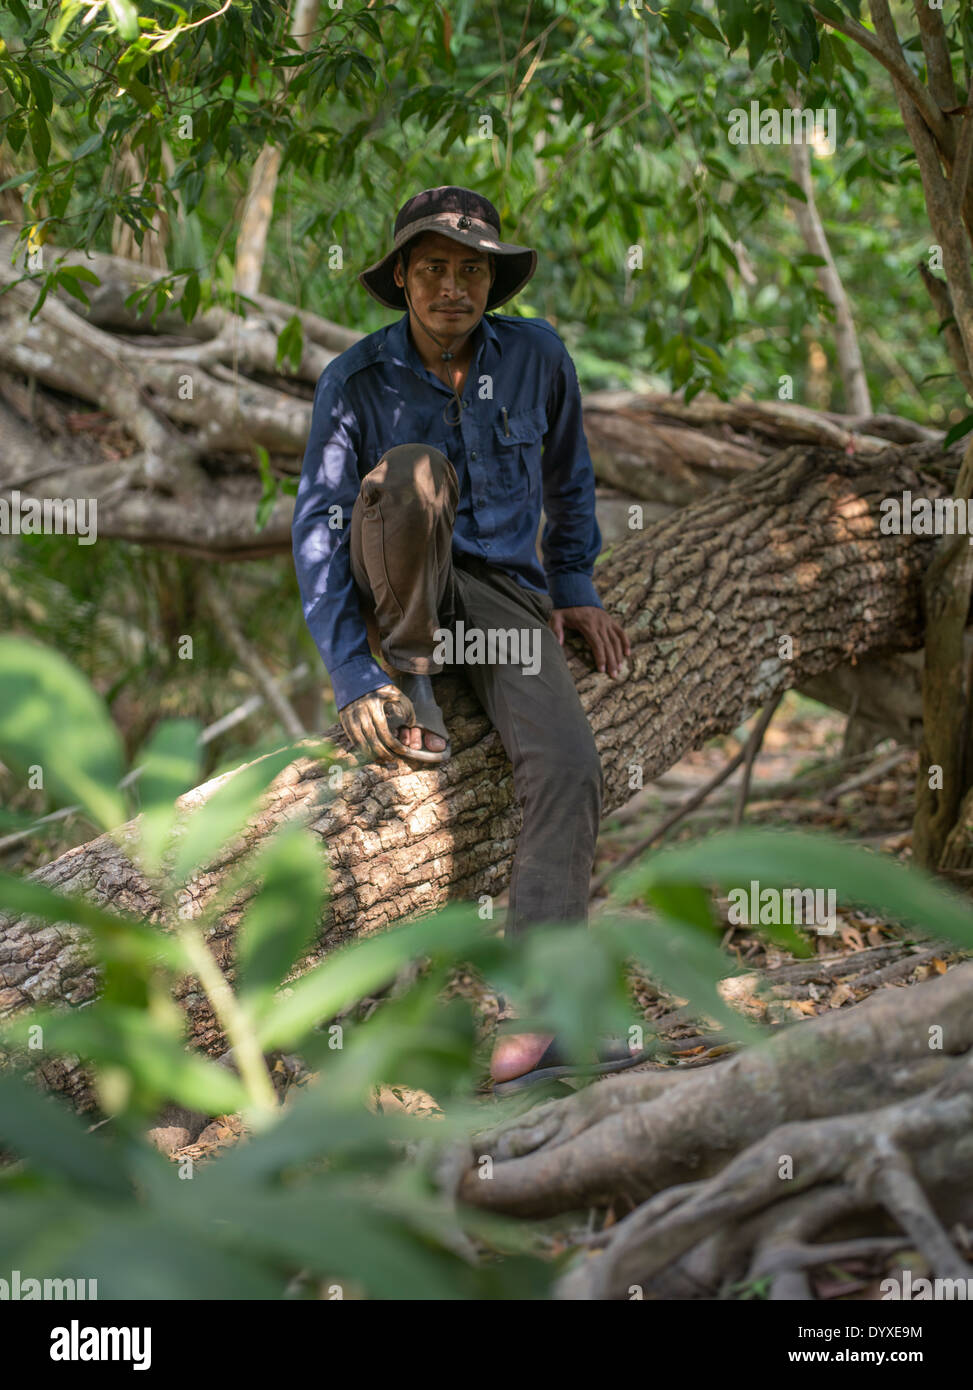 Cambodian guide at Kbal Spean who lost his hand to a landmine and has wooden right hand. - Stock Image